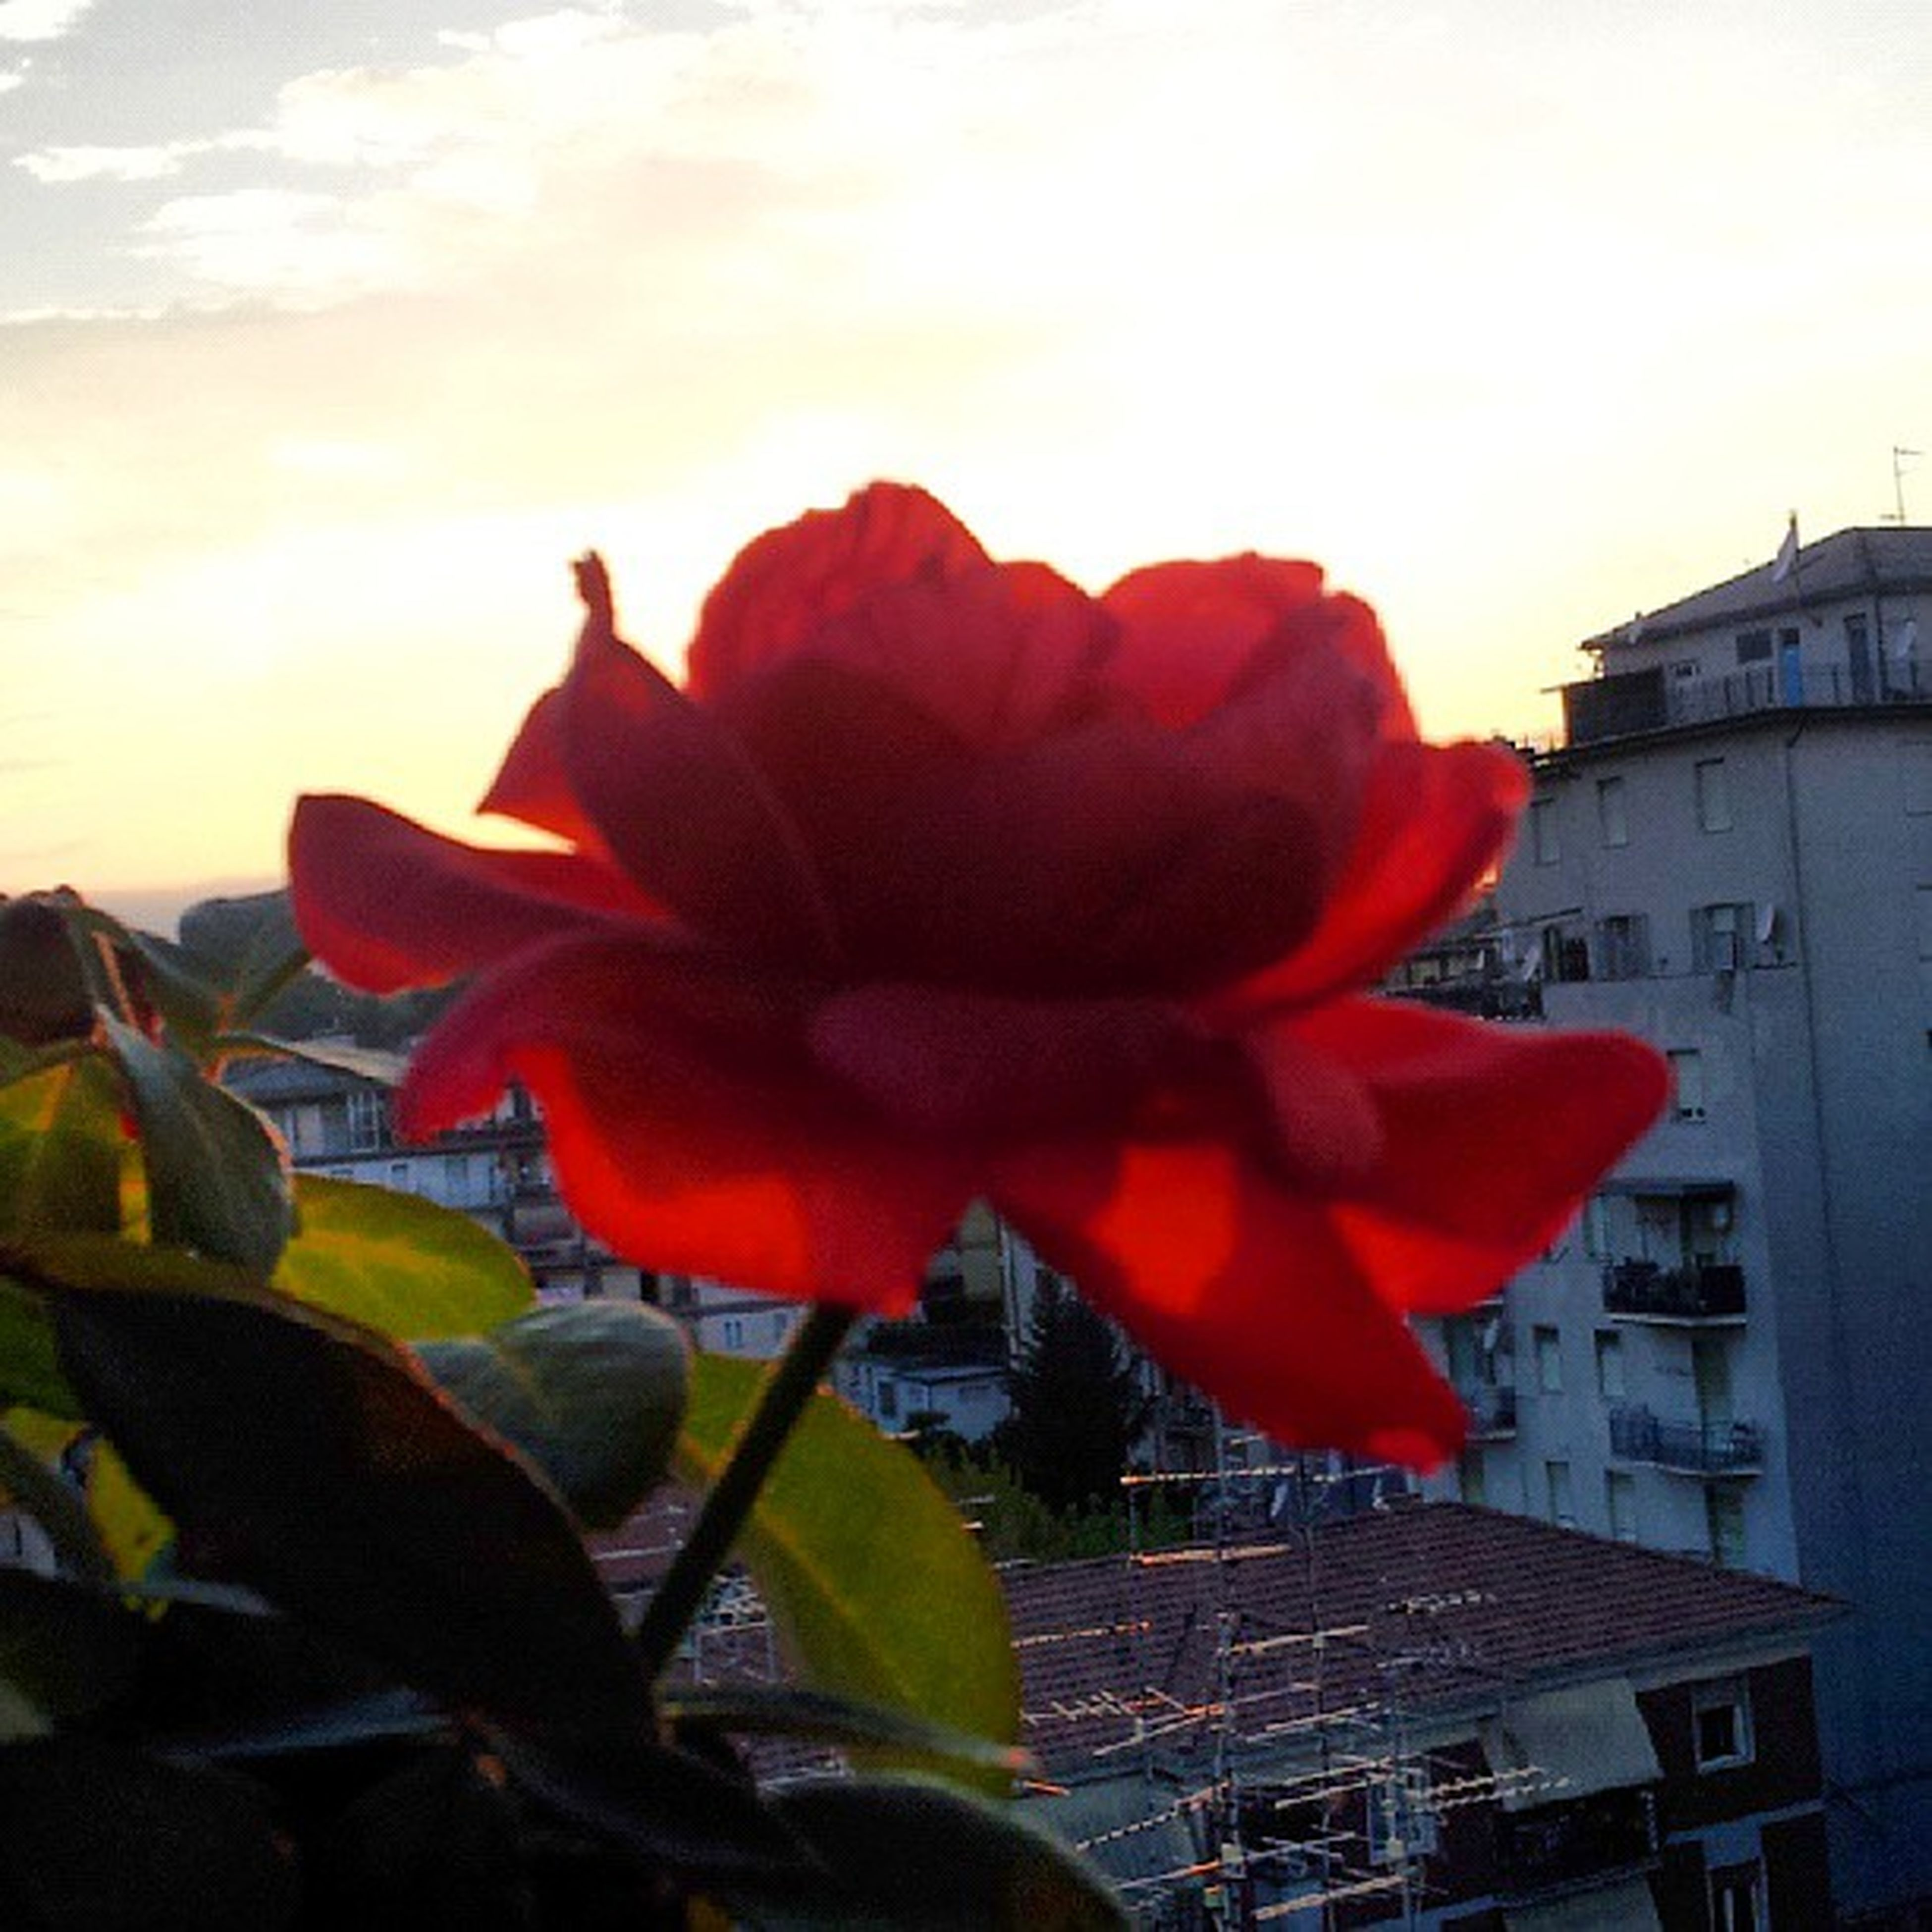 flower, petal, flower head, fragility, freshness, red, growth, orange color, beauty in nature, blooming, sky, close-up, plant, nature, single flower, sunset, focus on foreground, building exterior, sunlight, built structure